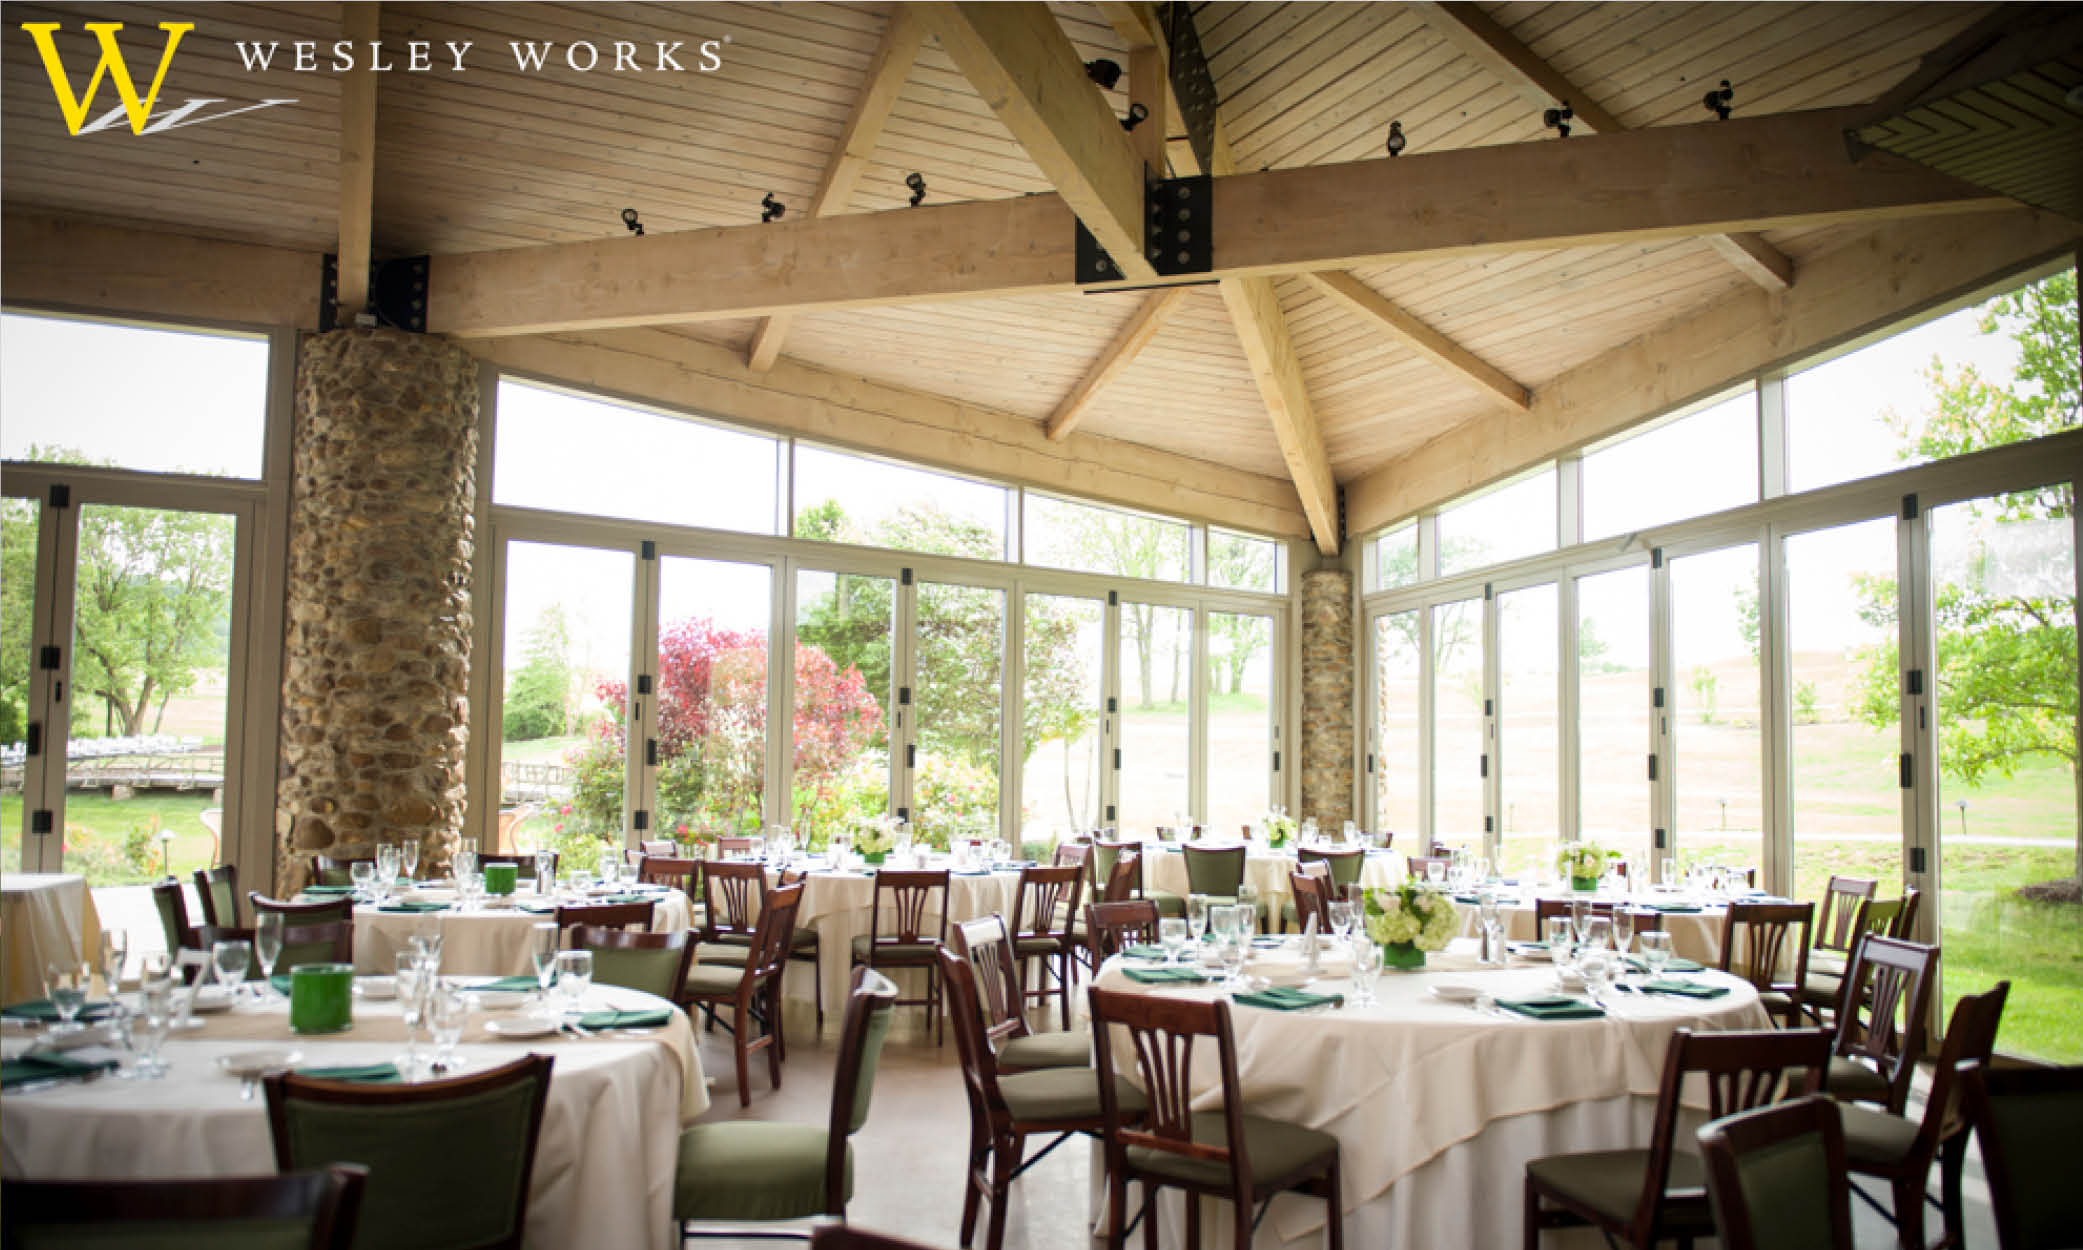 Lehigh valley wedding and reception sites wesley works for Wedding venue with a view